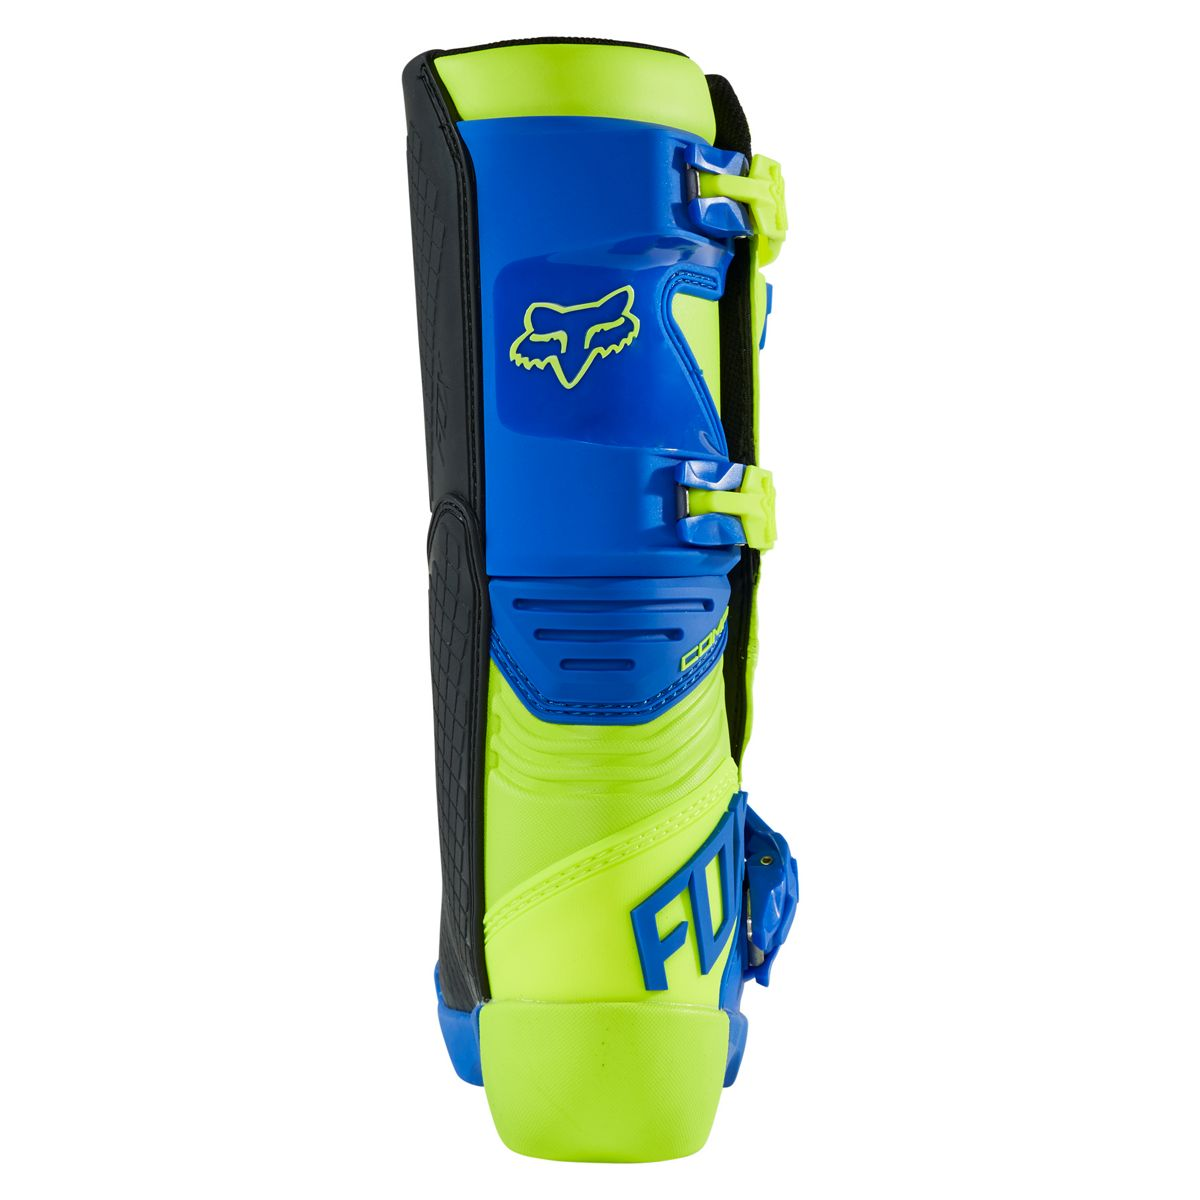 27689-586 2021 Fox Racing Youth Comp Motocross Boots Yellow Blue Kinder Laarzen Stiefel Bottes Enfant